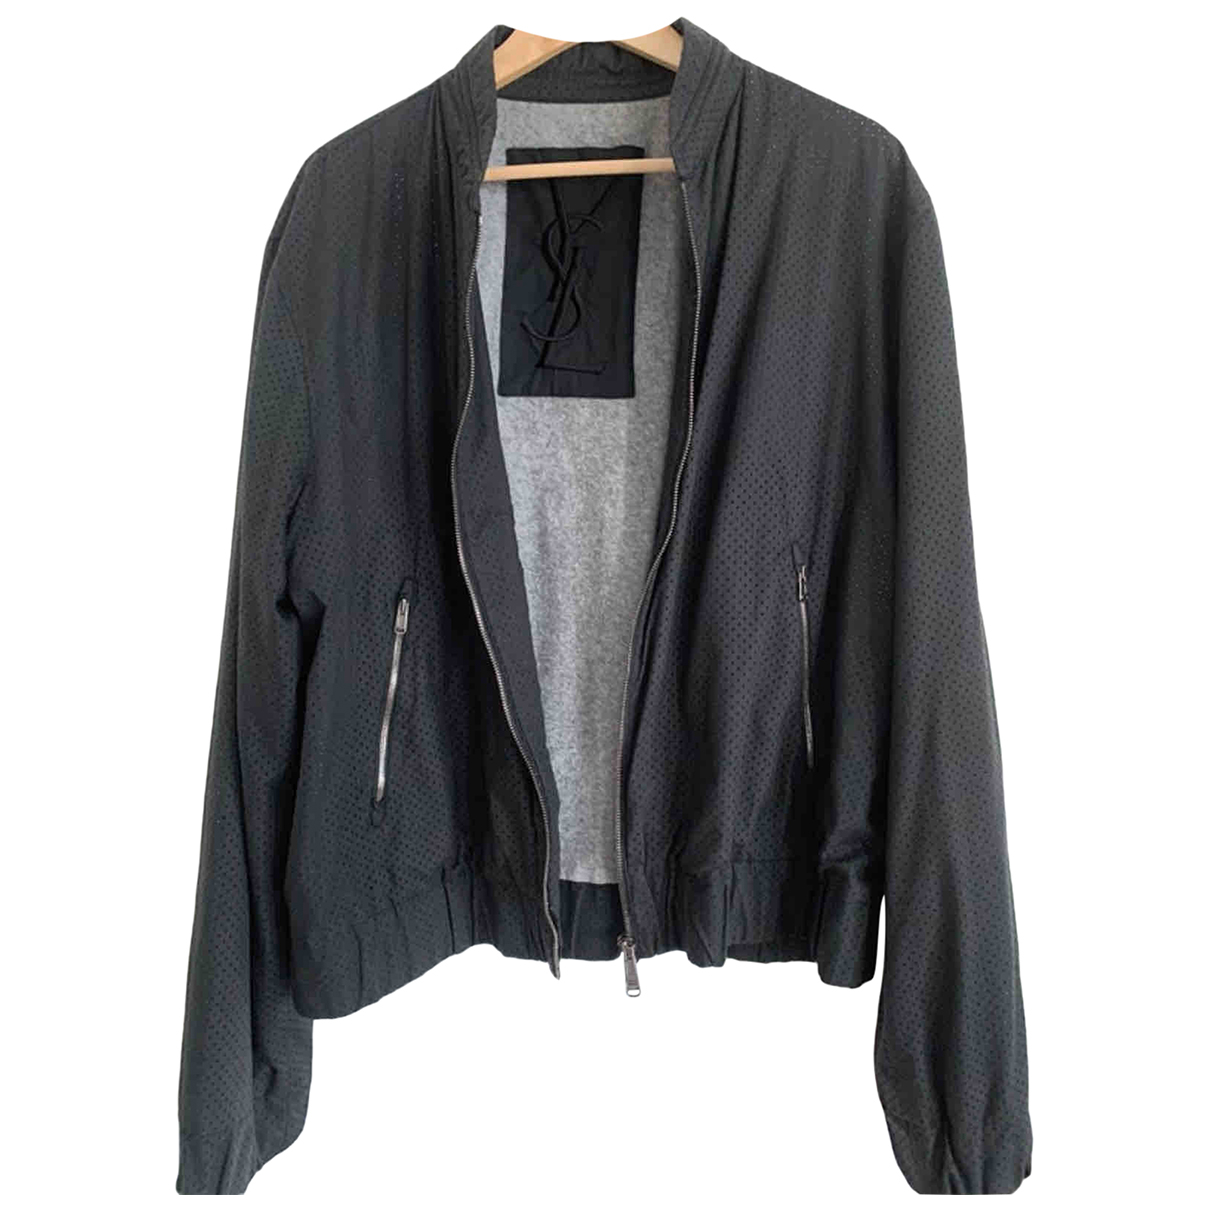 Yves Saint Laurent \N Black Cotton jacket  for Men XL International